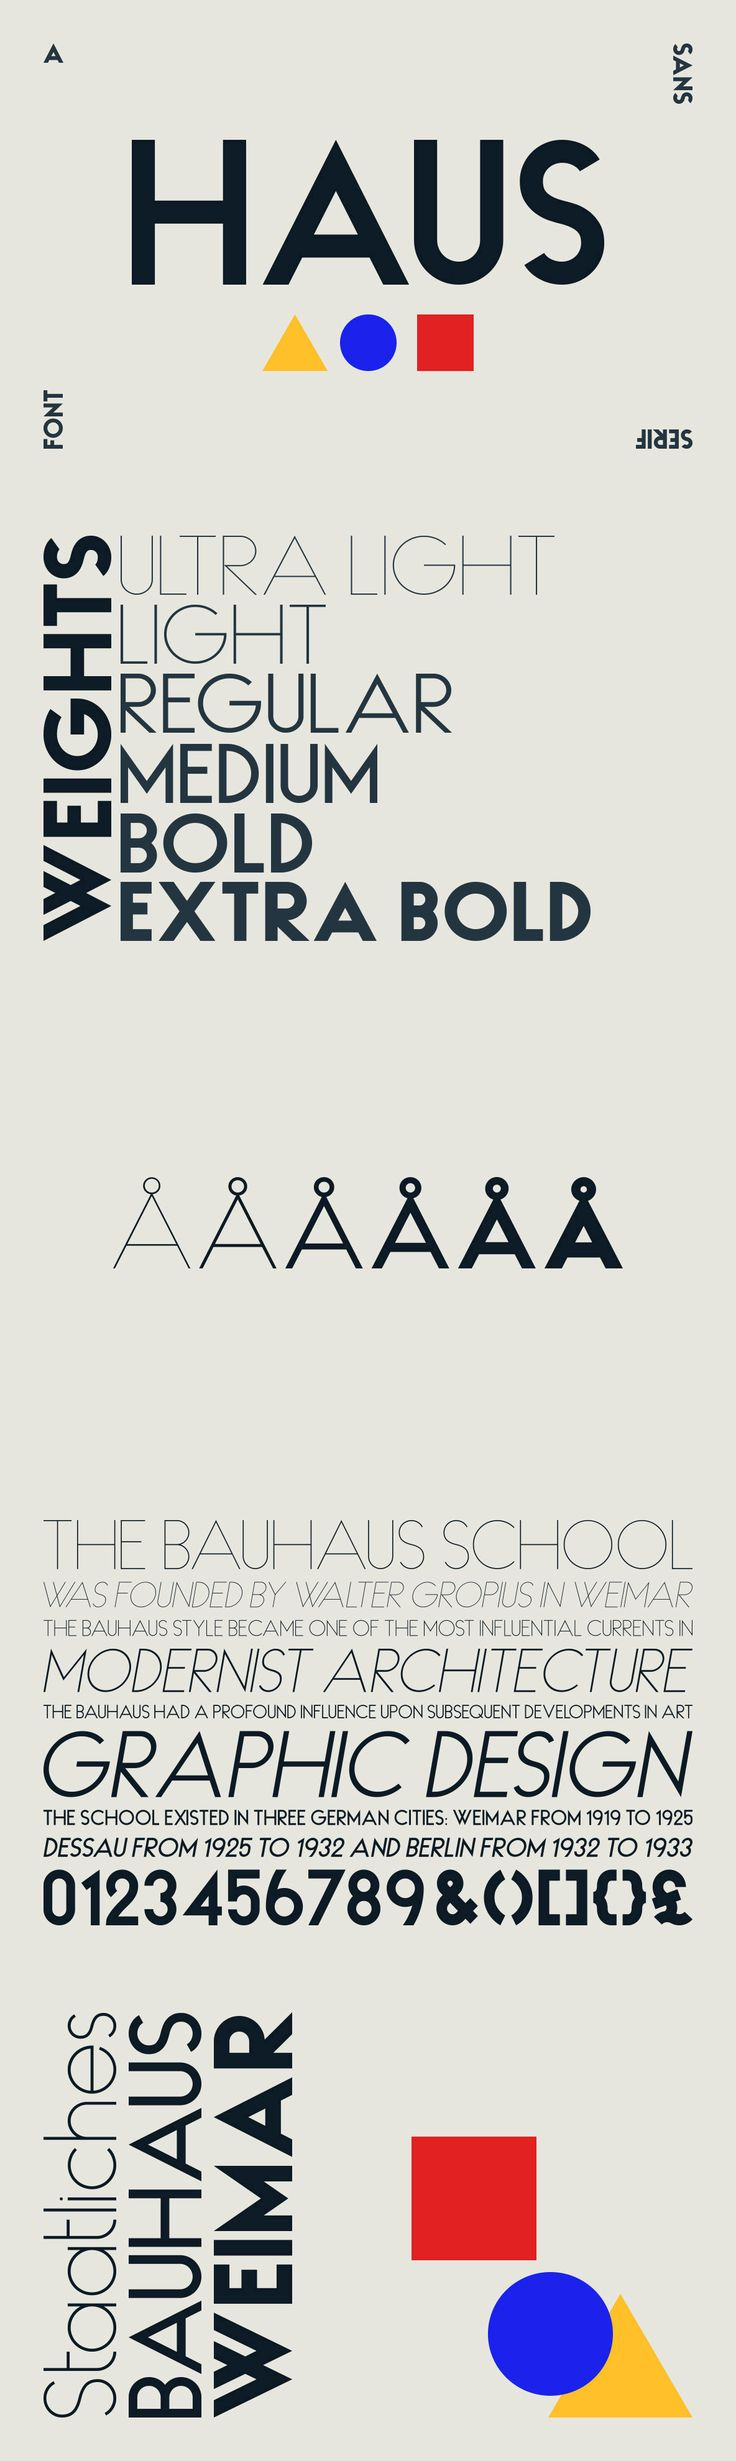 HAUS Sans - HAUS Sans is inspired by Bauhaus and historical grotesk typefaces of the 1930s.